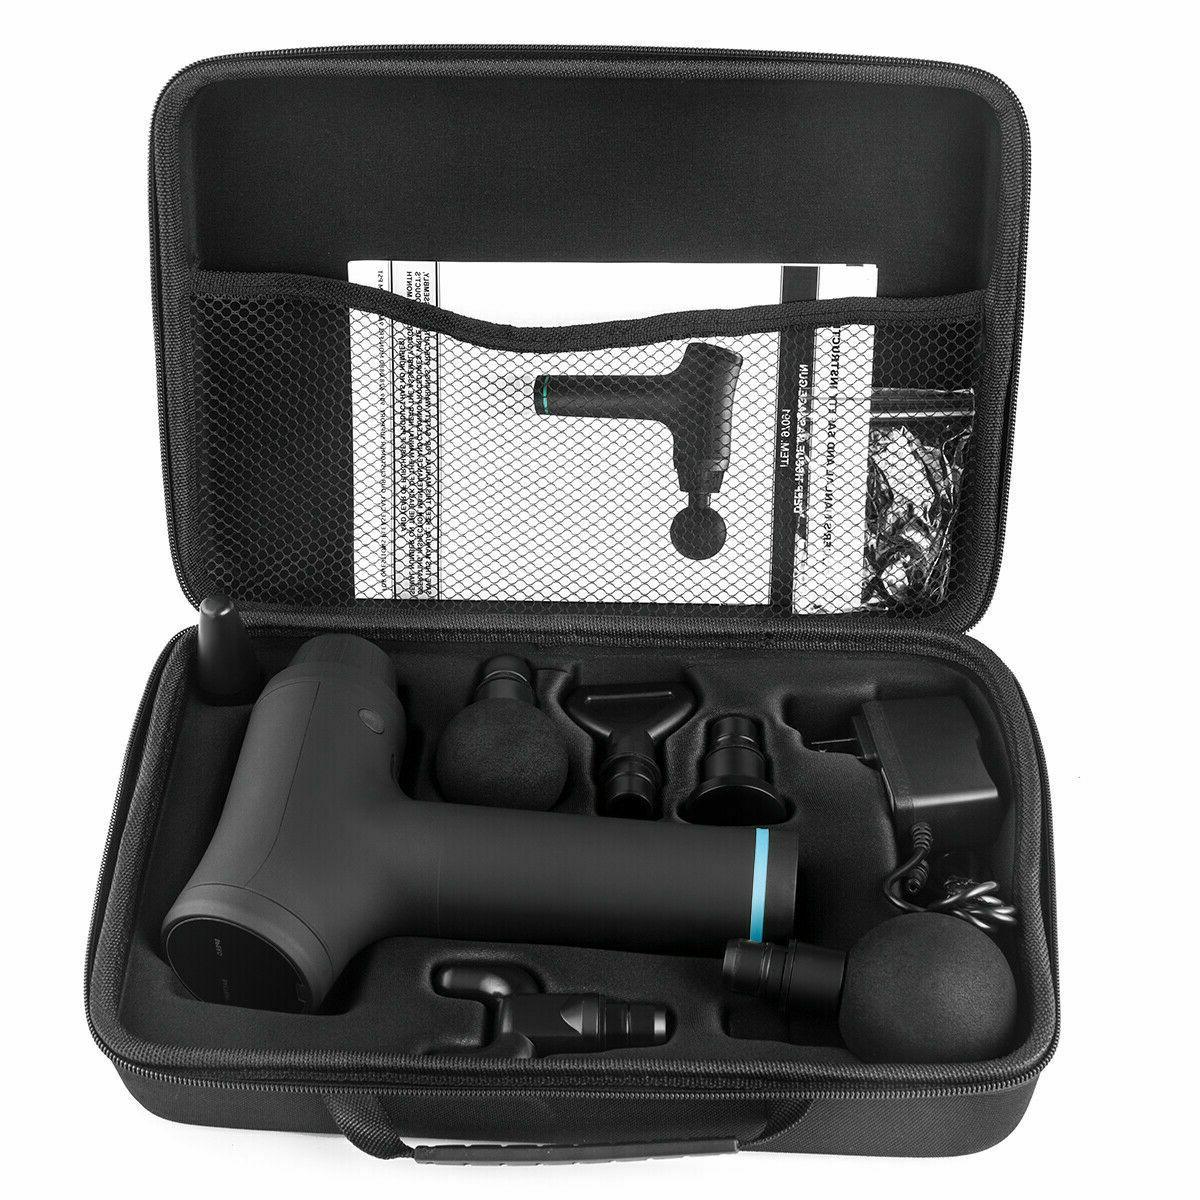 6 tissue Gun Muscle Body sport Therapy